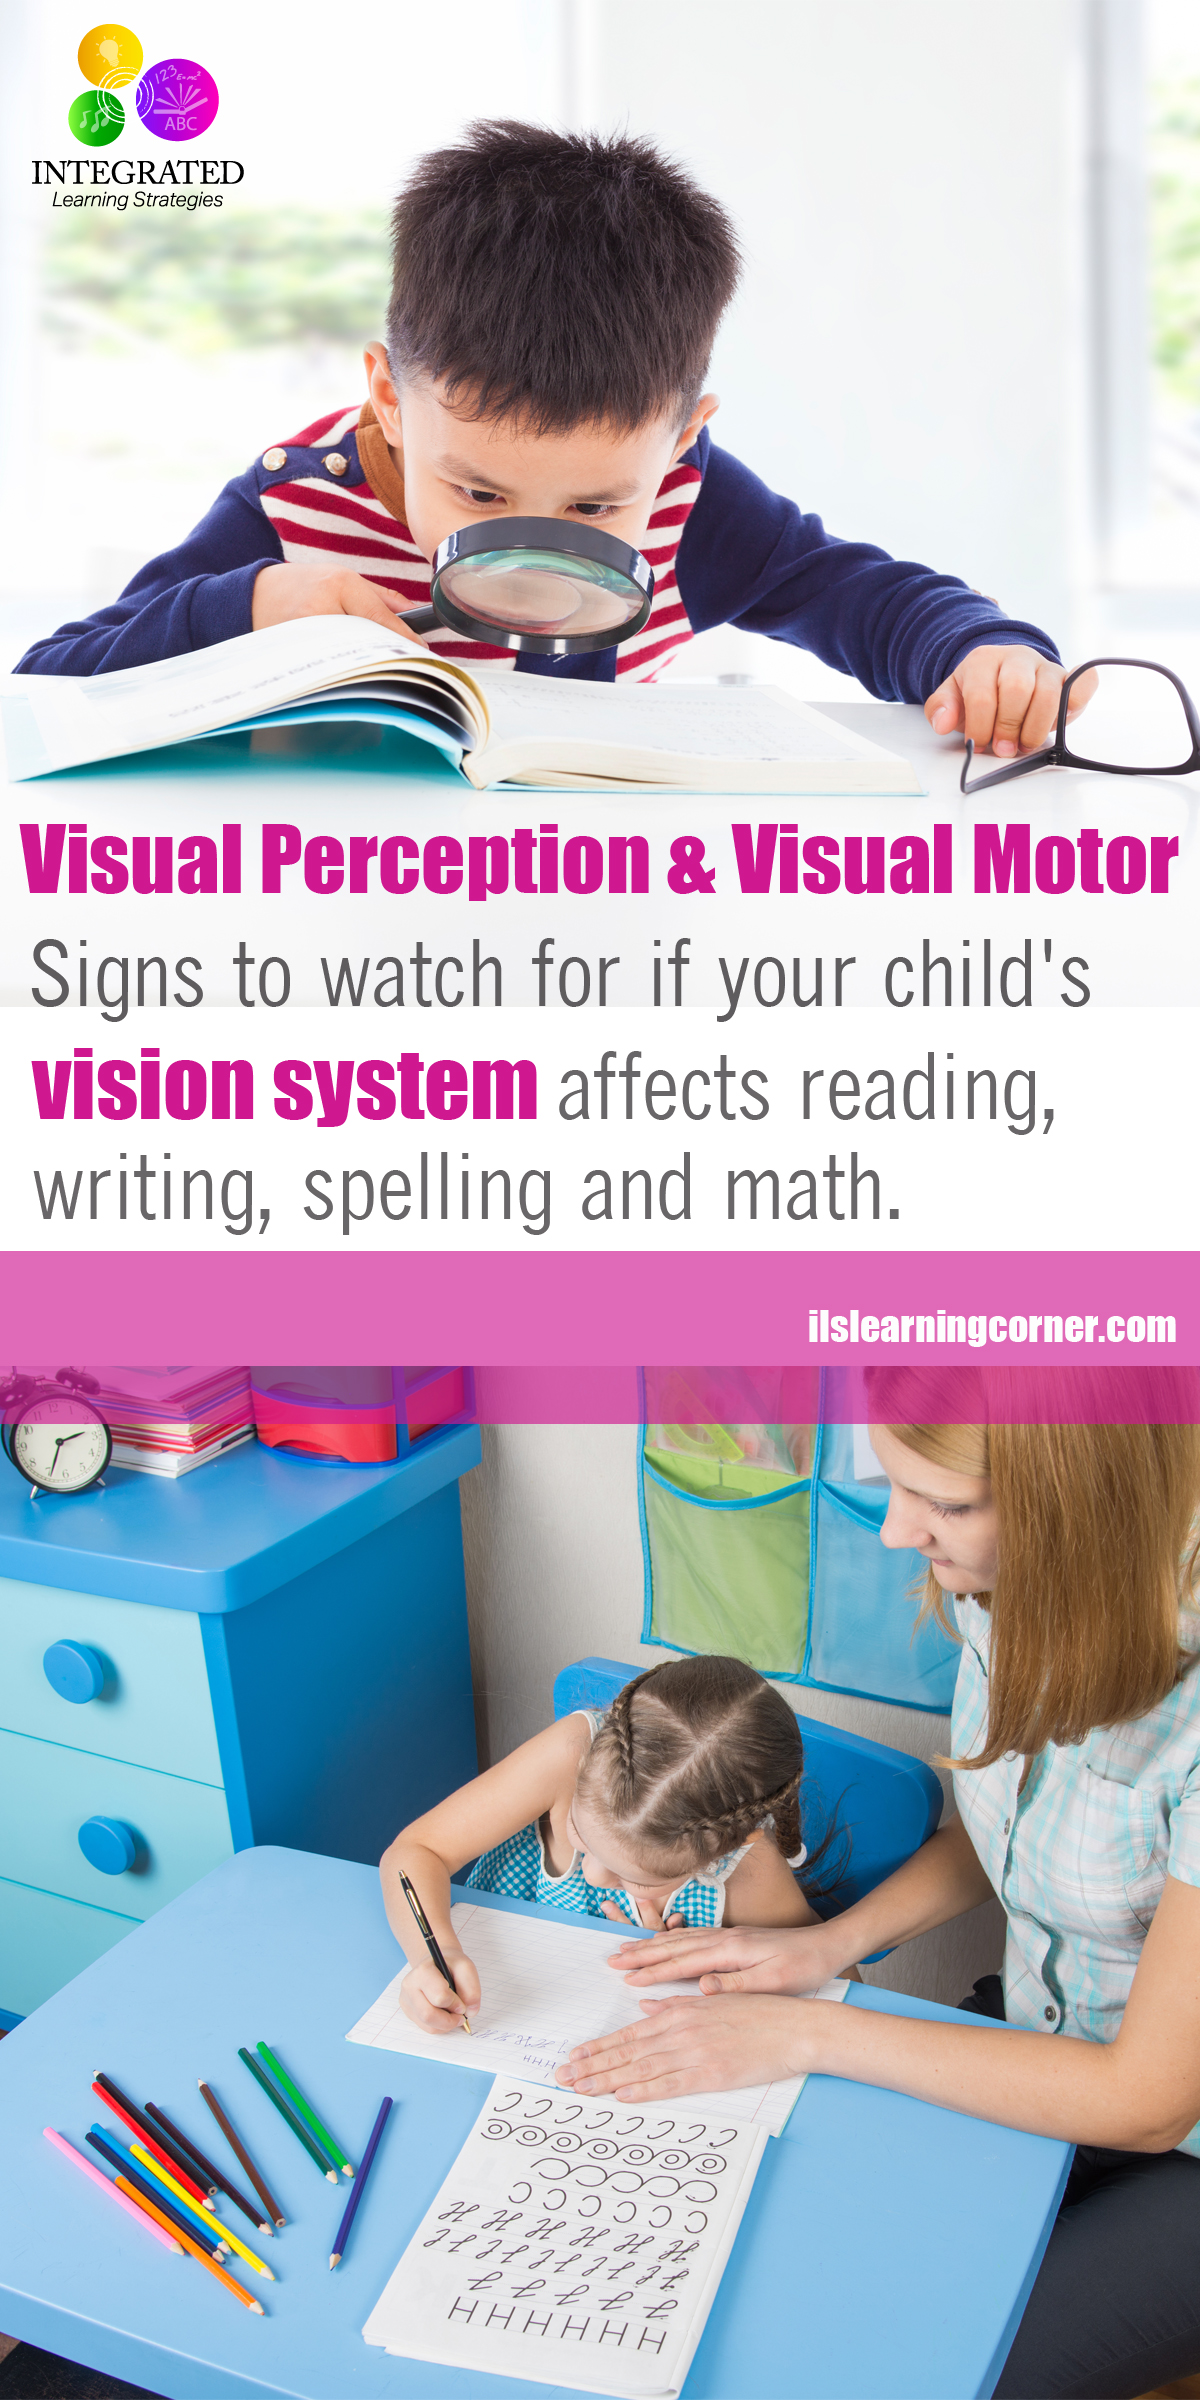 Visual Development Why Poor Visual Perception Skills